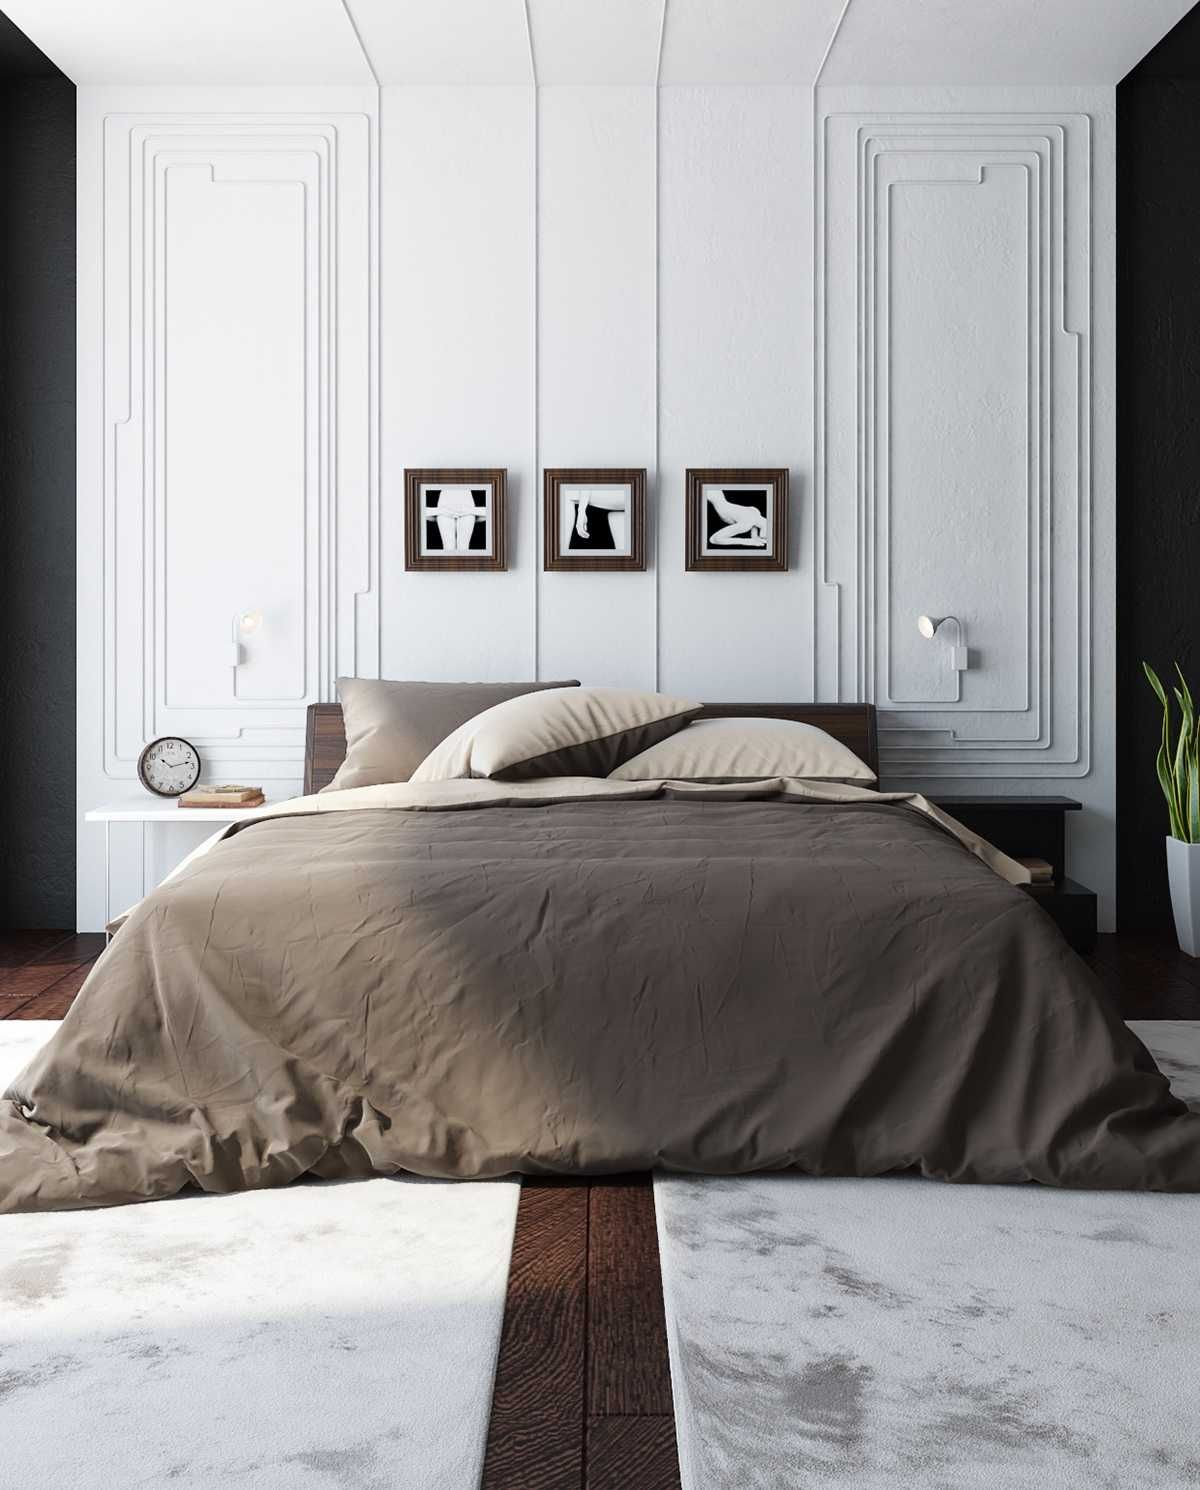 Bedroom Decorations Easy Ways Black And White Wall Decor Stunning Amp